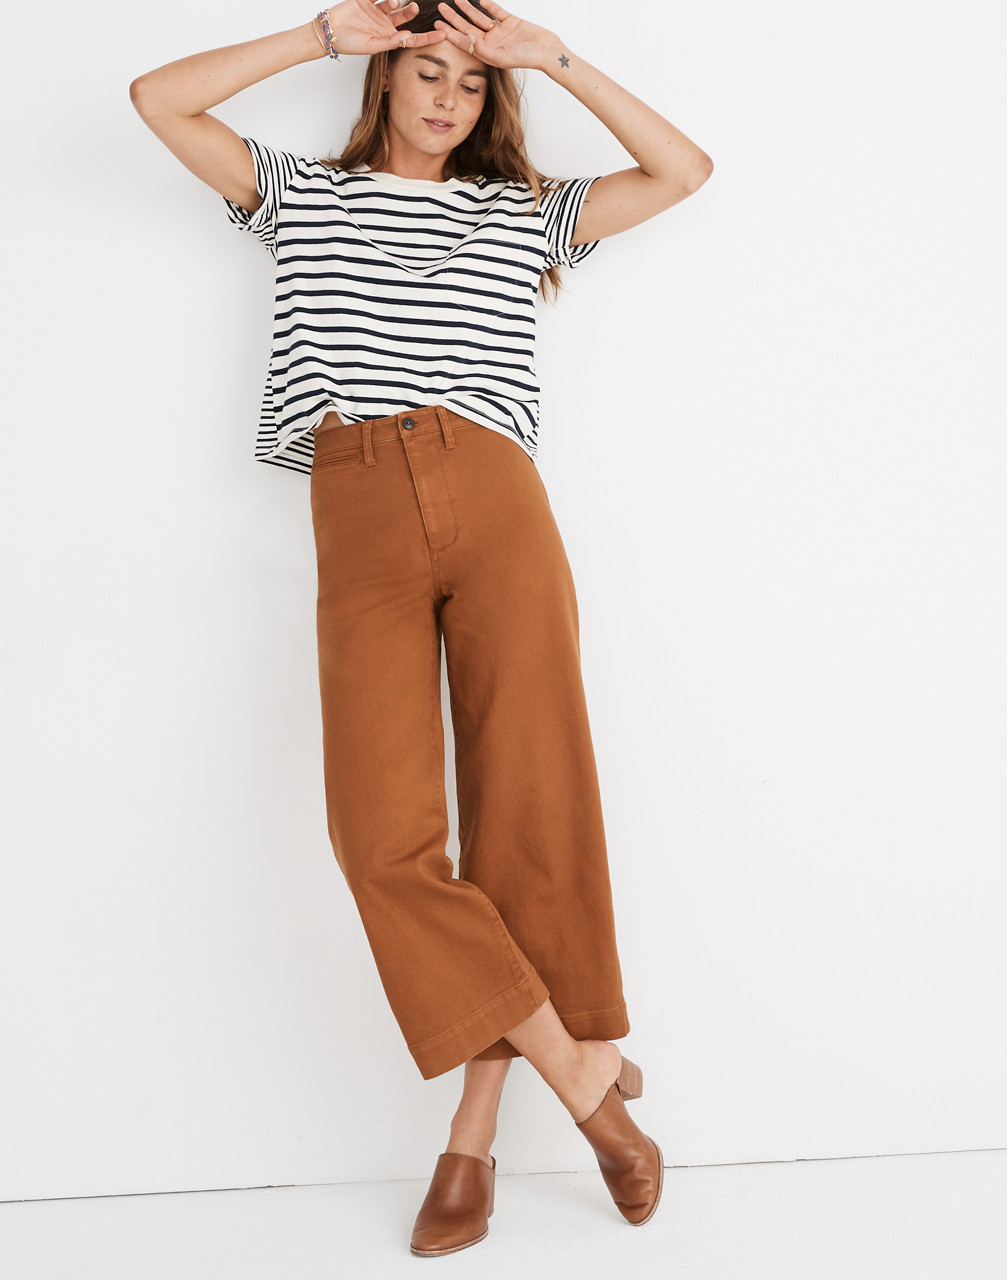 Emmett Wide-Leg Crop Pants in burnt sienna image 3